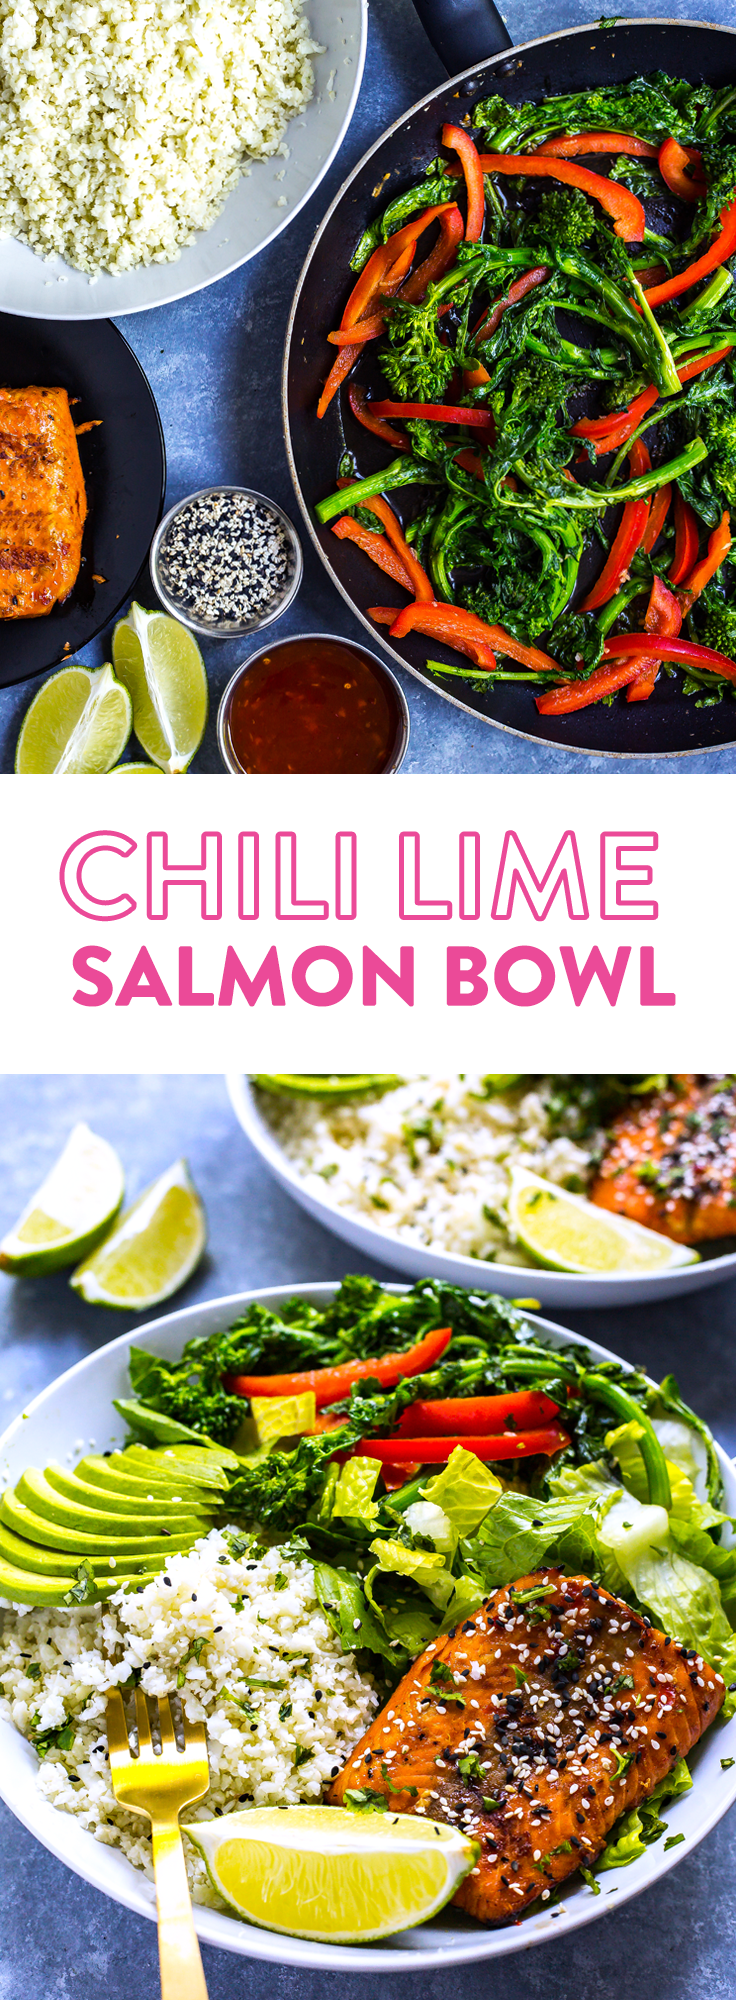 Chili Lime Salmon Bowl Broccoli Rabe Pinterest